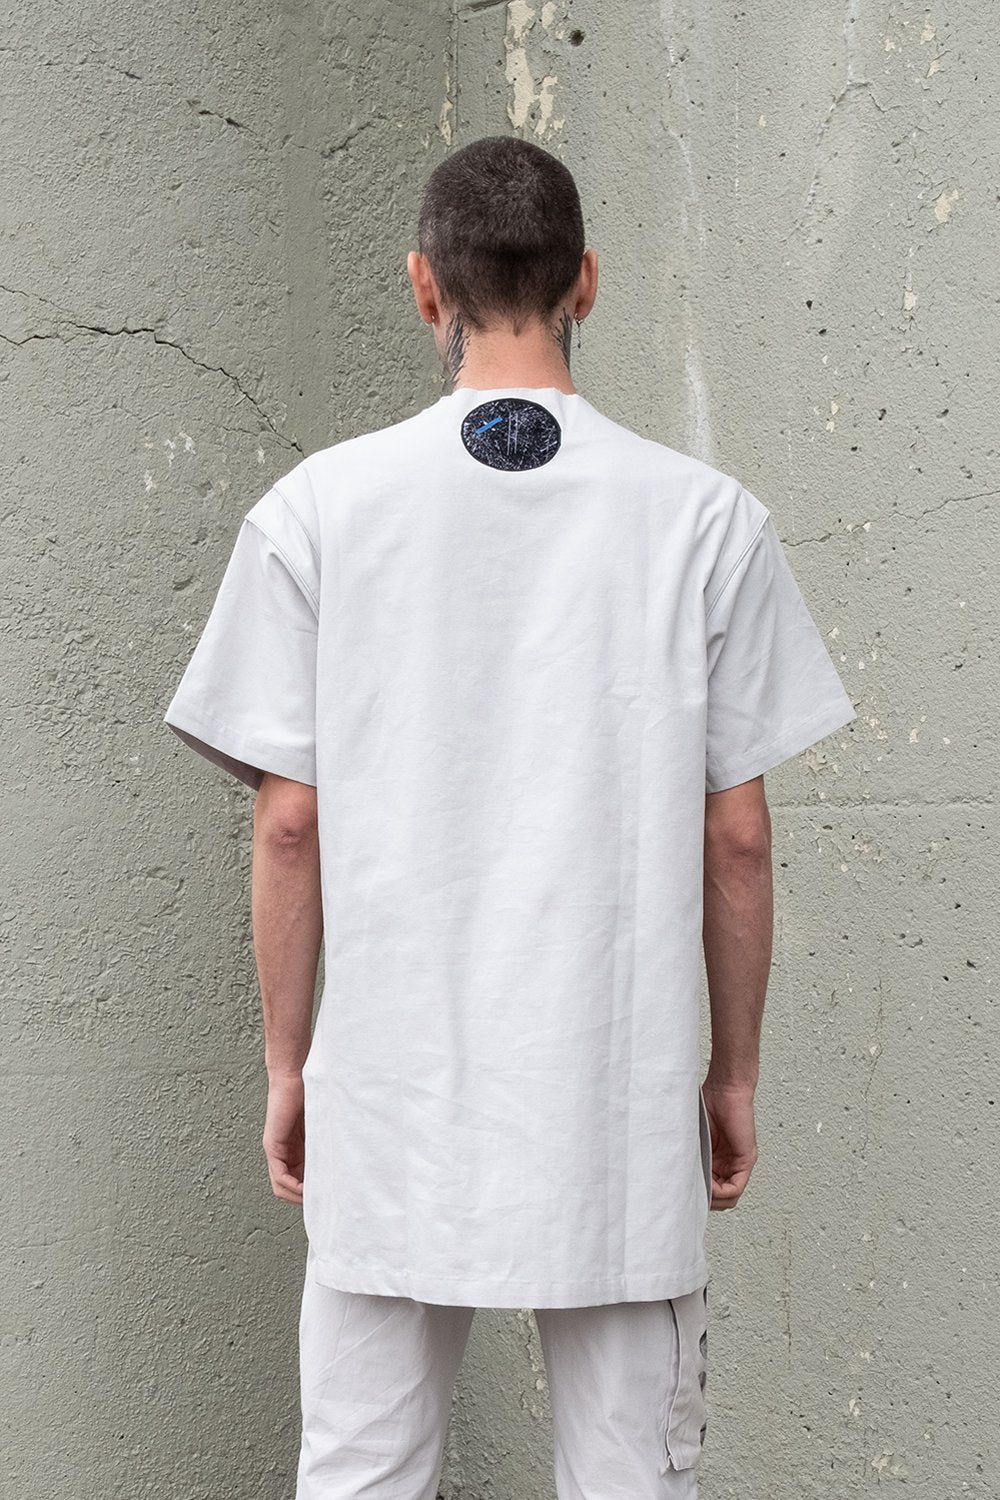 Grey Unisex Tunic Shirt. Grey Detachable Circular Tote. 100% Cotton. Designed in Madras, Made in India  | BISKIT UNISEX CLOTHING LABEL